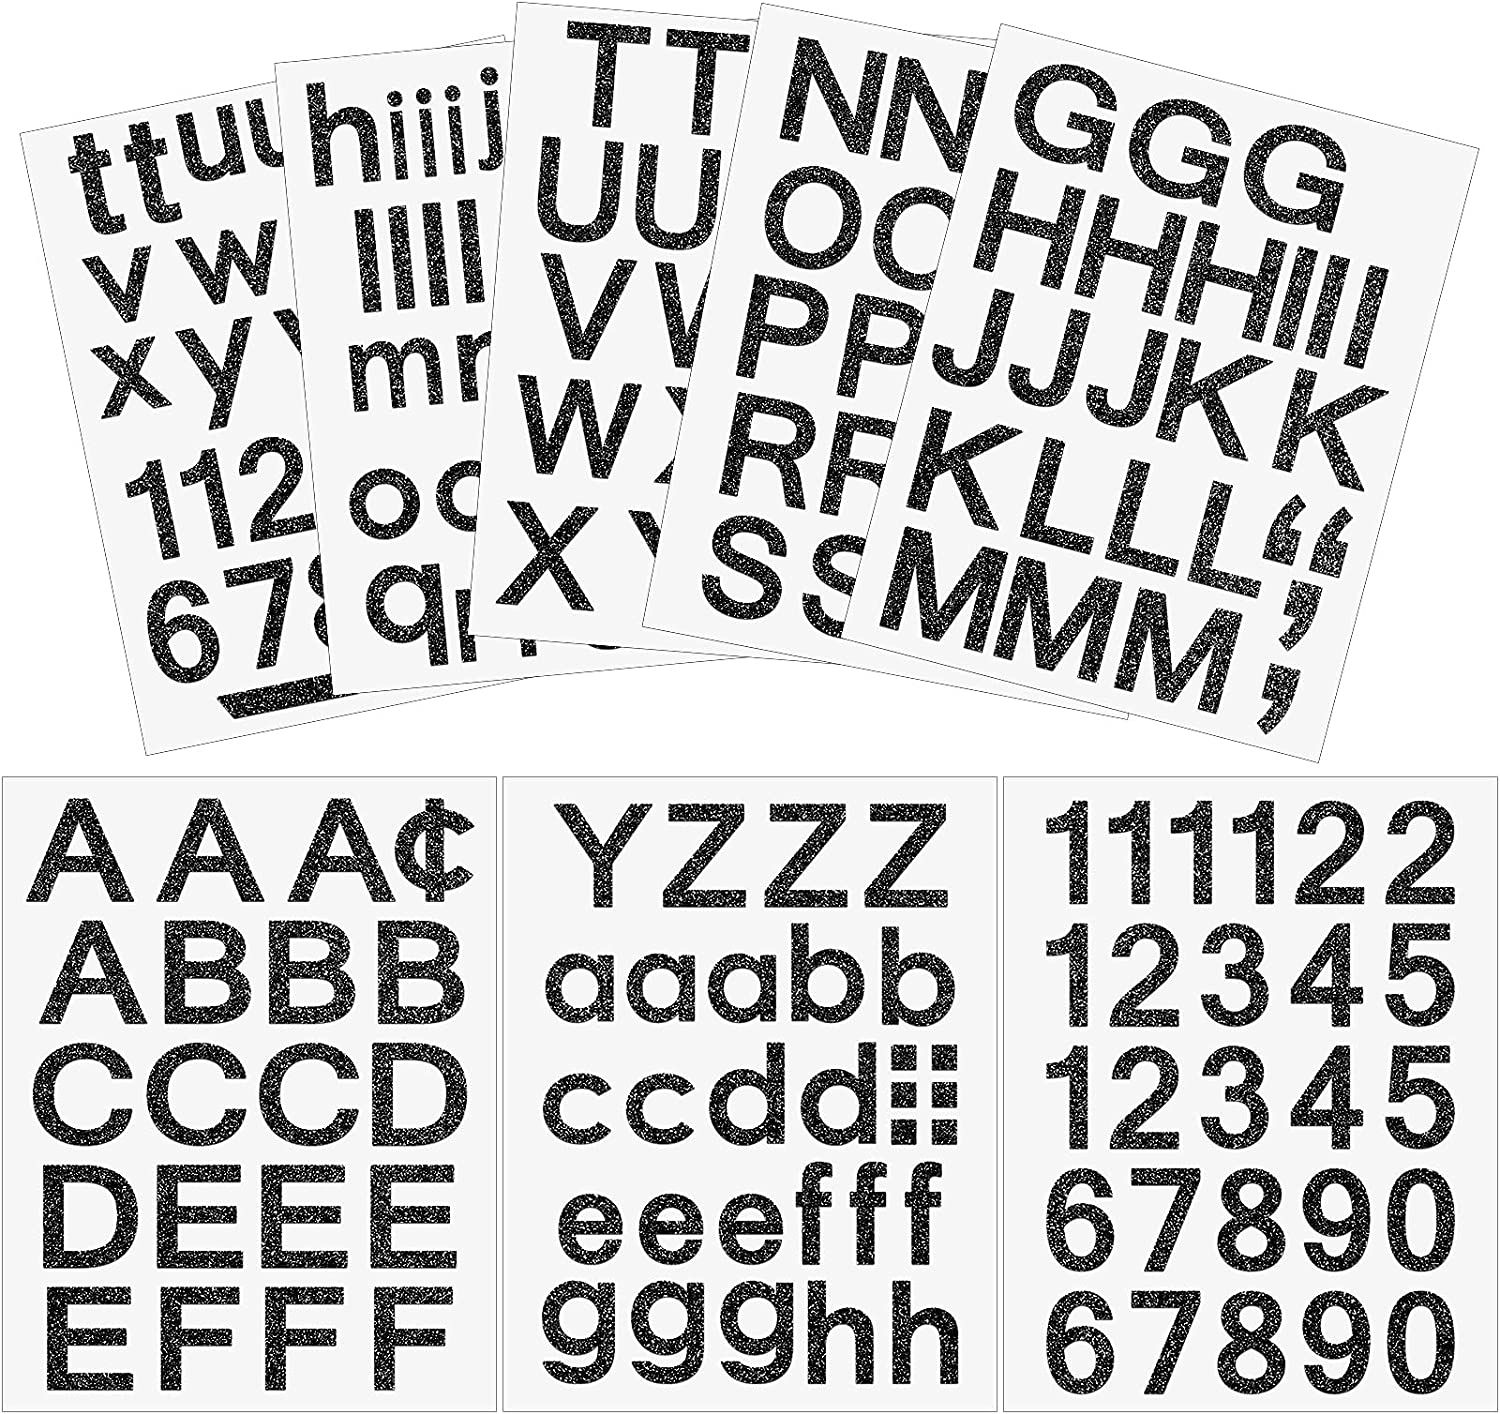 202 Pieces 8 Sheets Self-Adhesive Vinyl Letters Numbers Kit, Mailbox Numbers Sticker for Mailbox, Signs, Window, Door, Cars, Trucks, Home, Business, Address Number (Glitter Black,2 Inch)